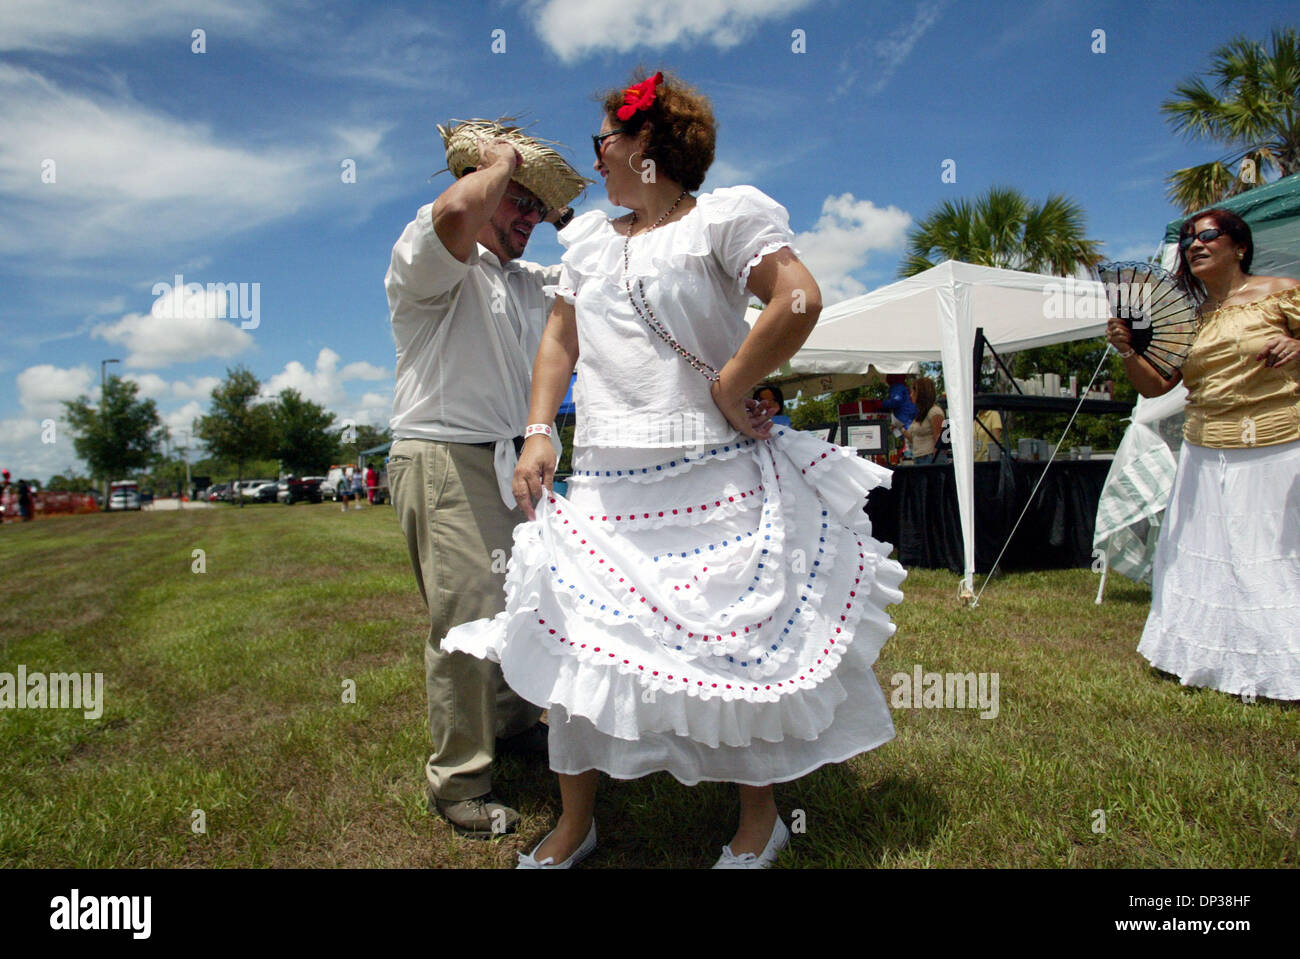 Jun 24, 2006; Port St. Lucie, FL, USA; Israel Pabon, dances with his wife Maria, at the San Juan Festival and Business Expo at the South County Regional Sports Stadium, while a friend Ana Villanueva, cq, tries to keep cool in the sun. The festival was sponsored by the Puerto Rican Association for Hispanic Affairs. The Pabons met when they were in high school and have always danced. - Stock Image